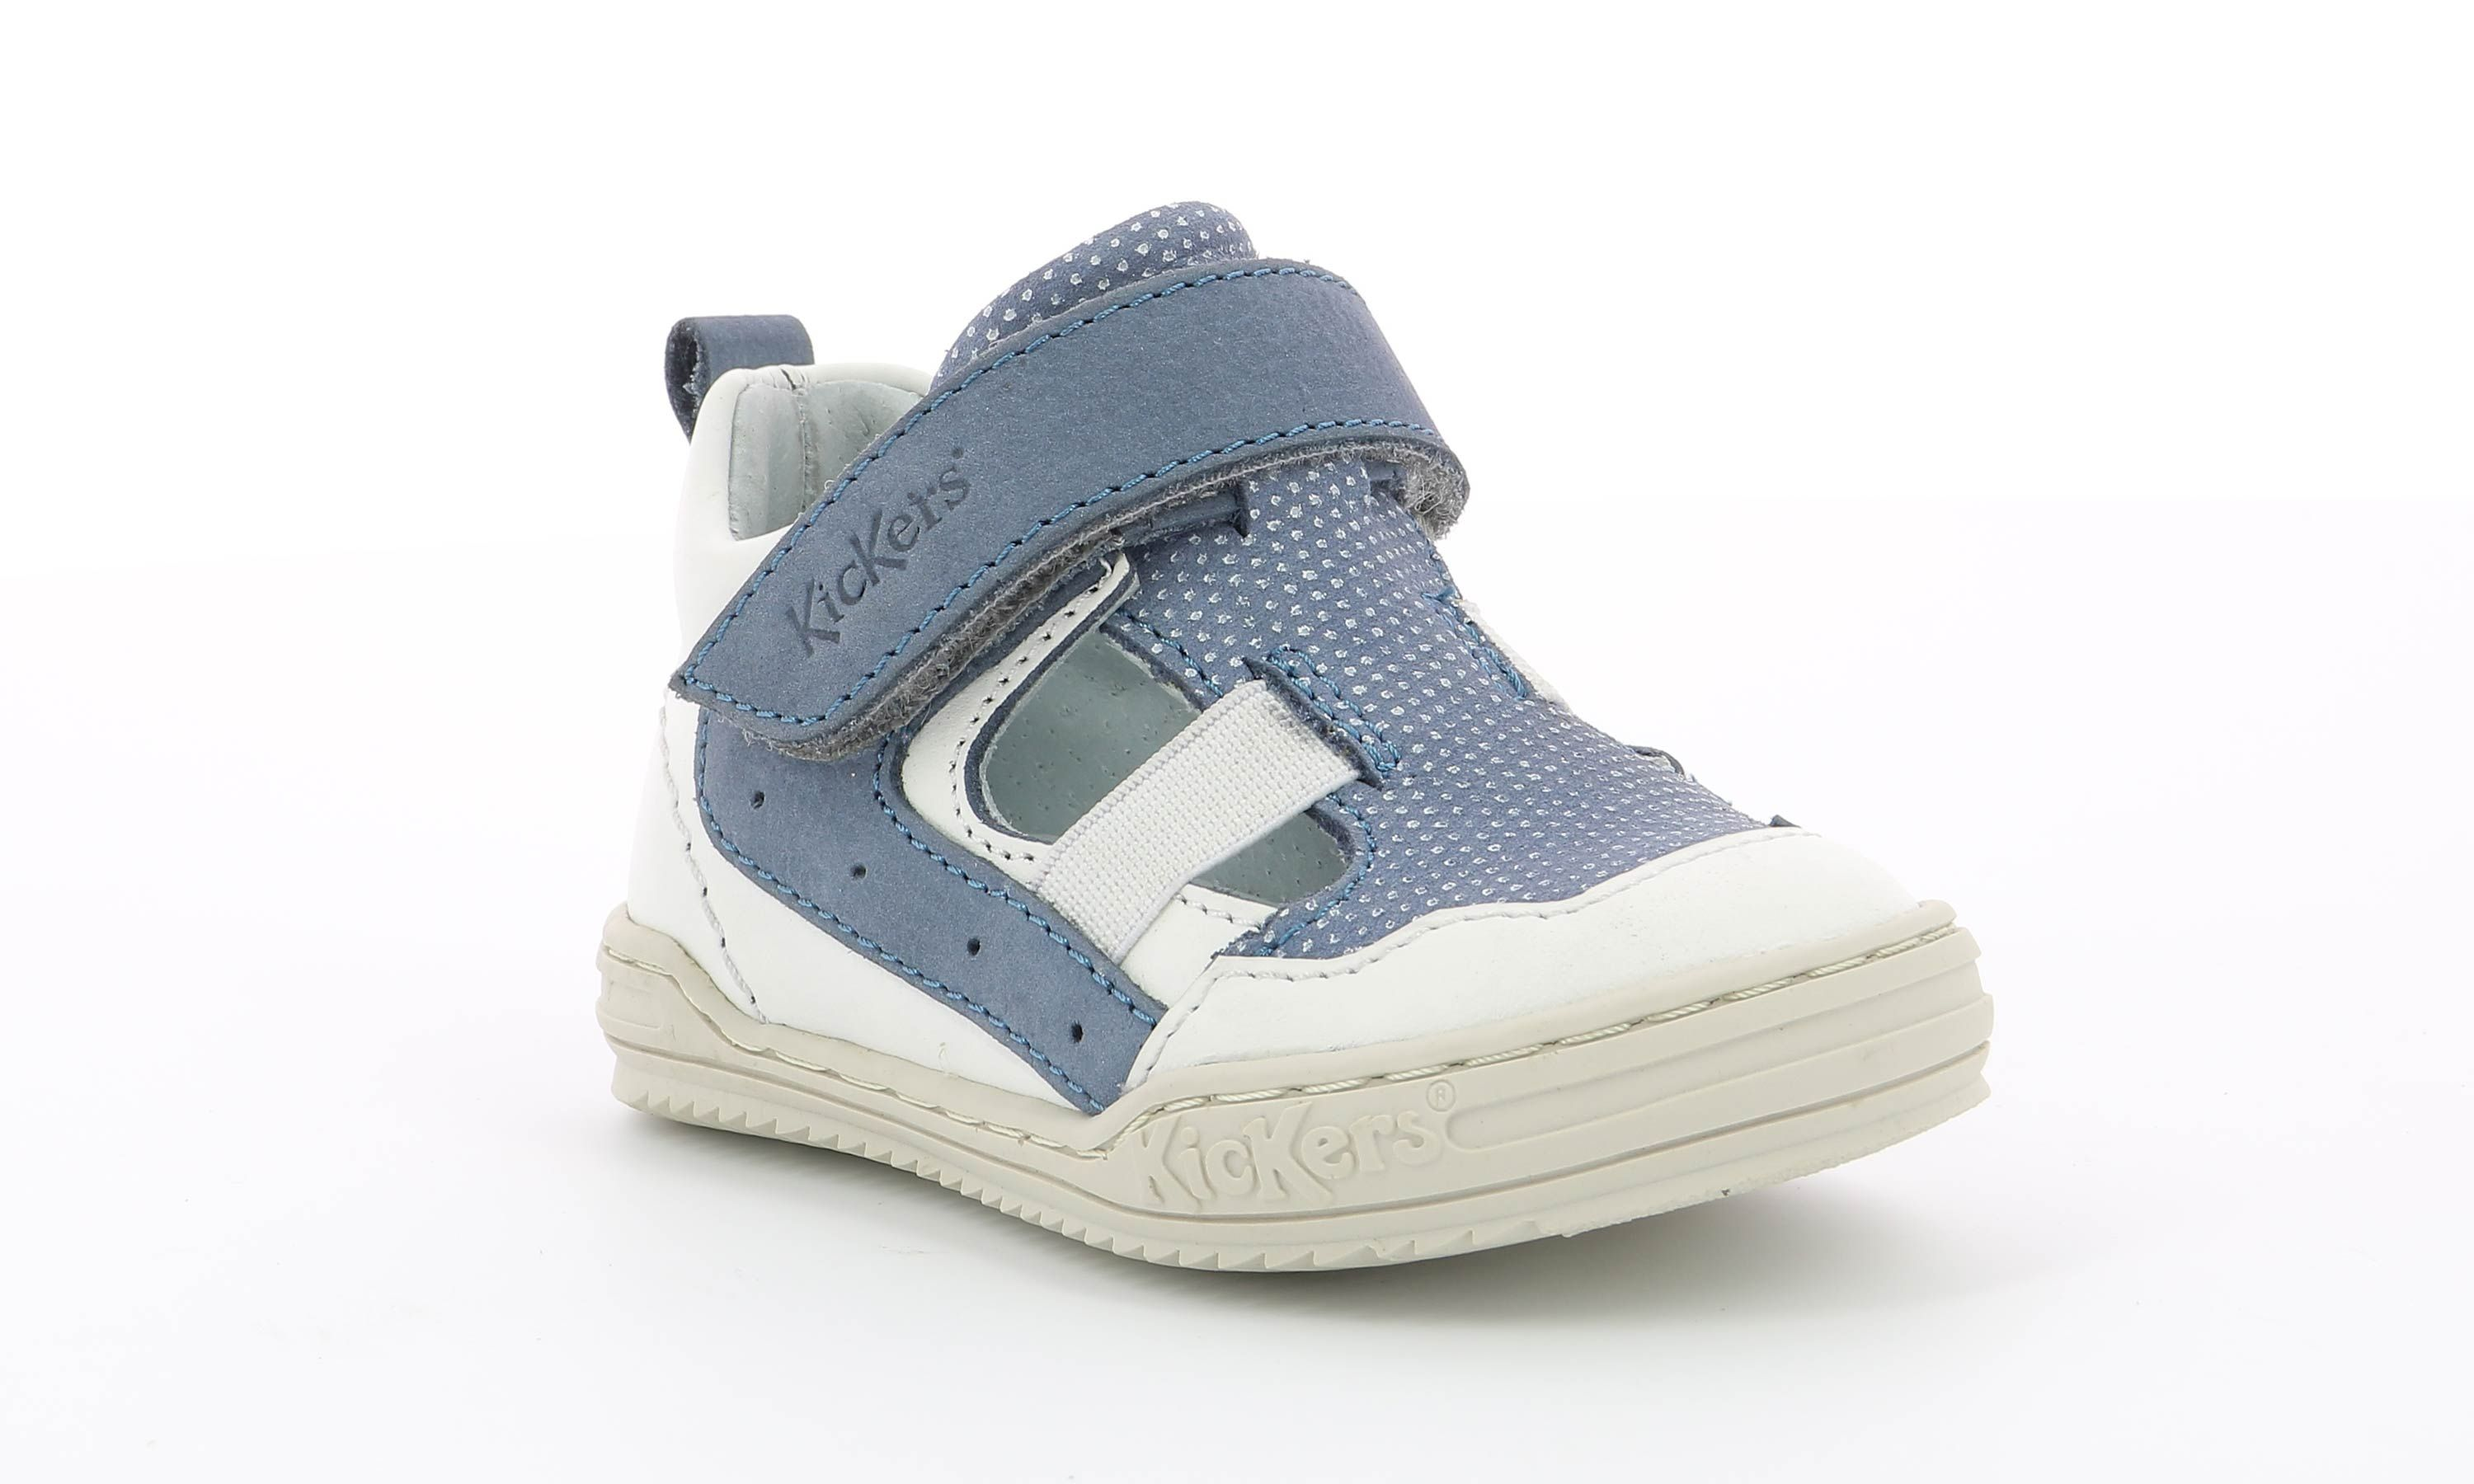 Chaussures Kickers JASON BLANC BLEU Kids and co